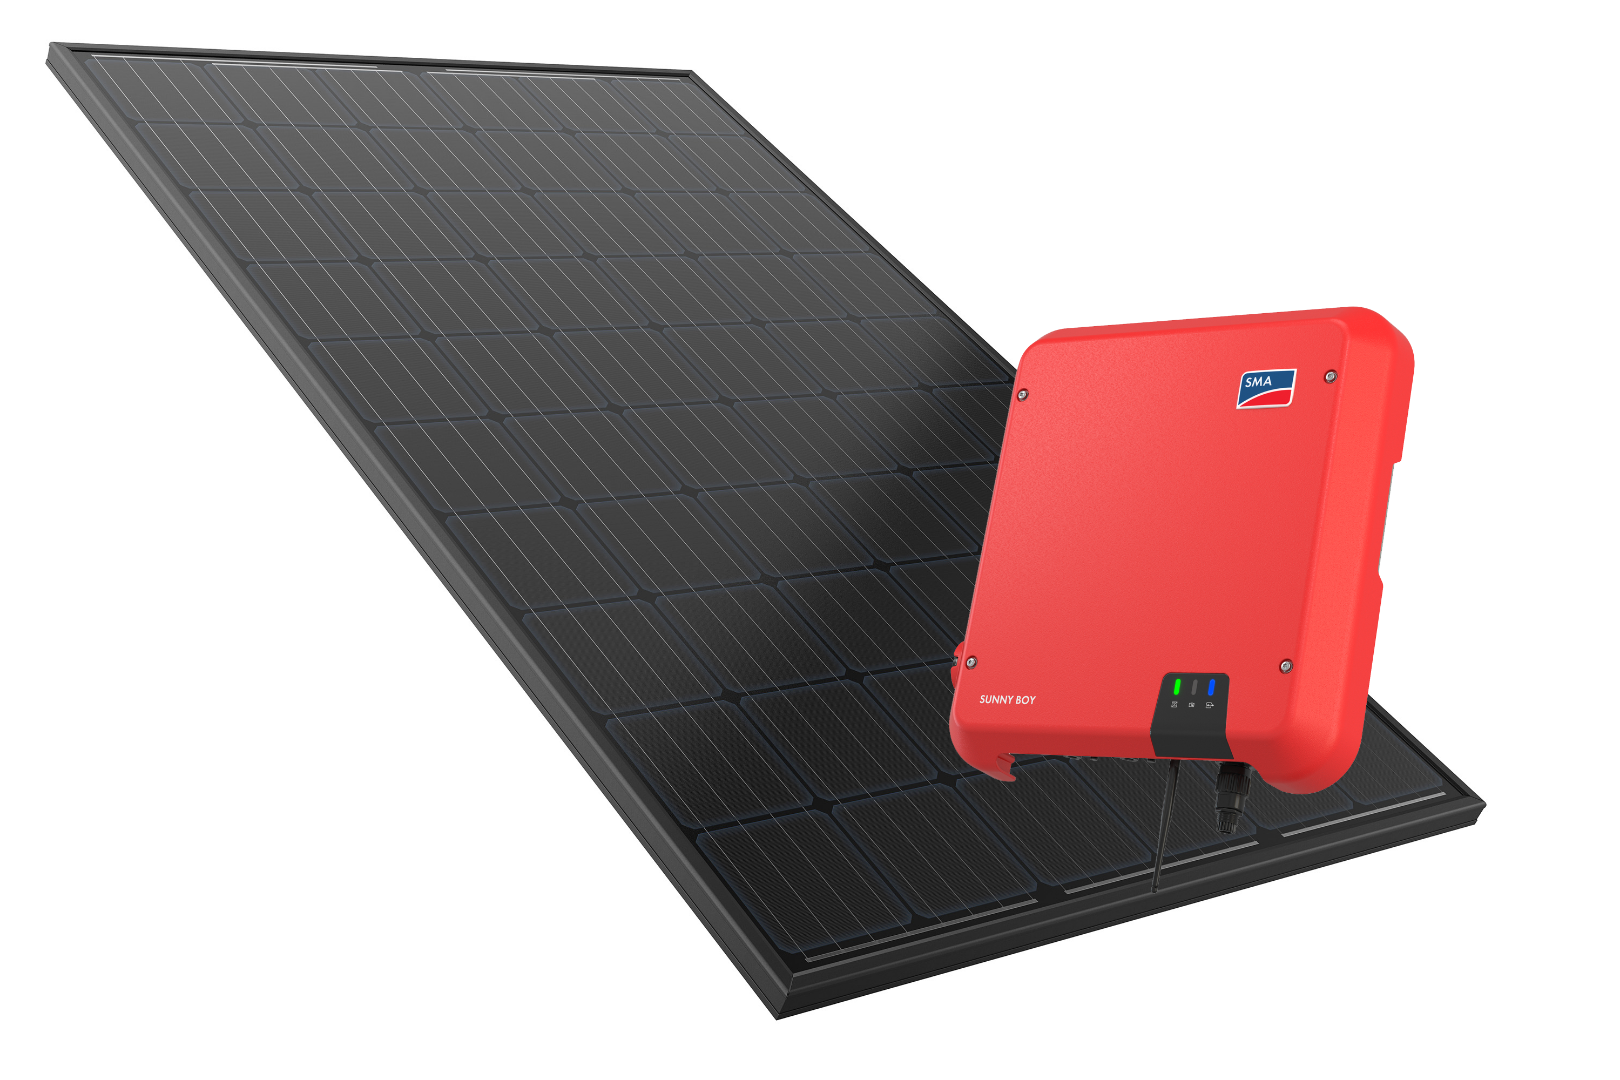 Premium Plus PV systems use REC 280w twin peak panels and SMA Inverters